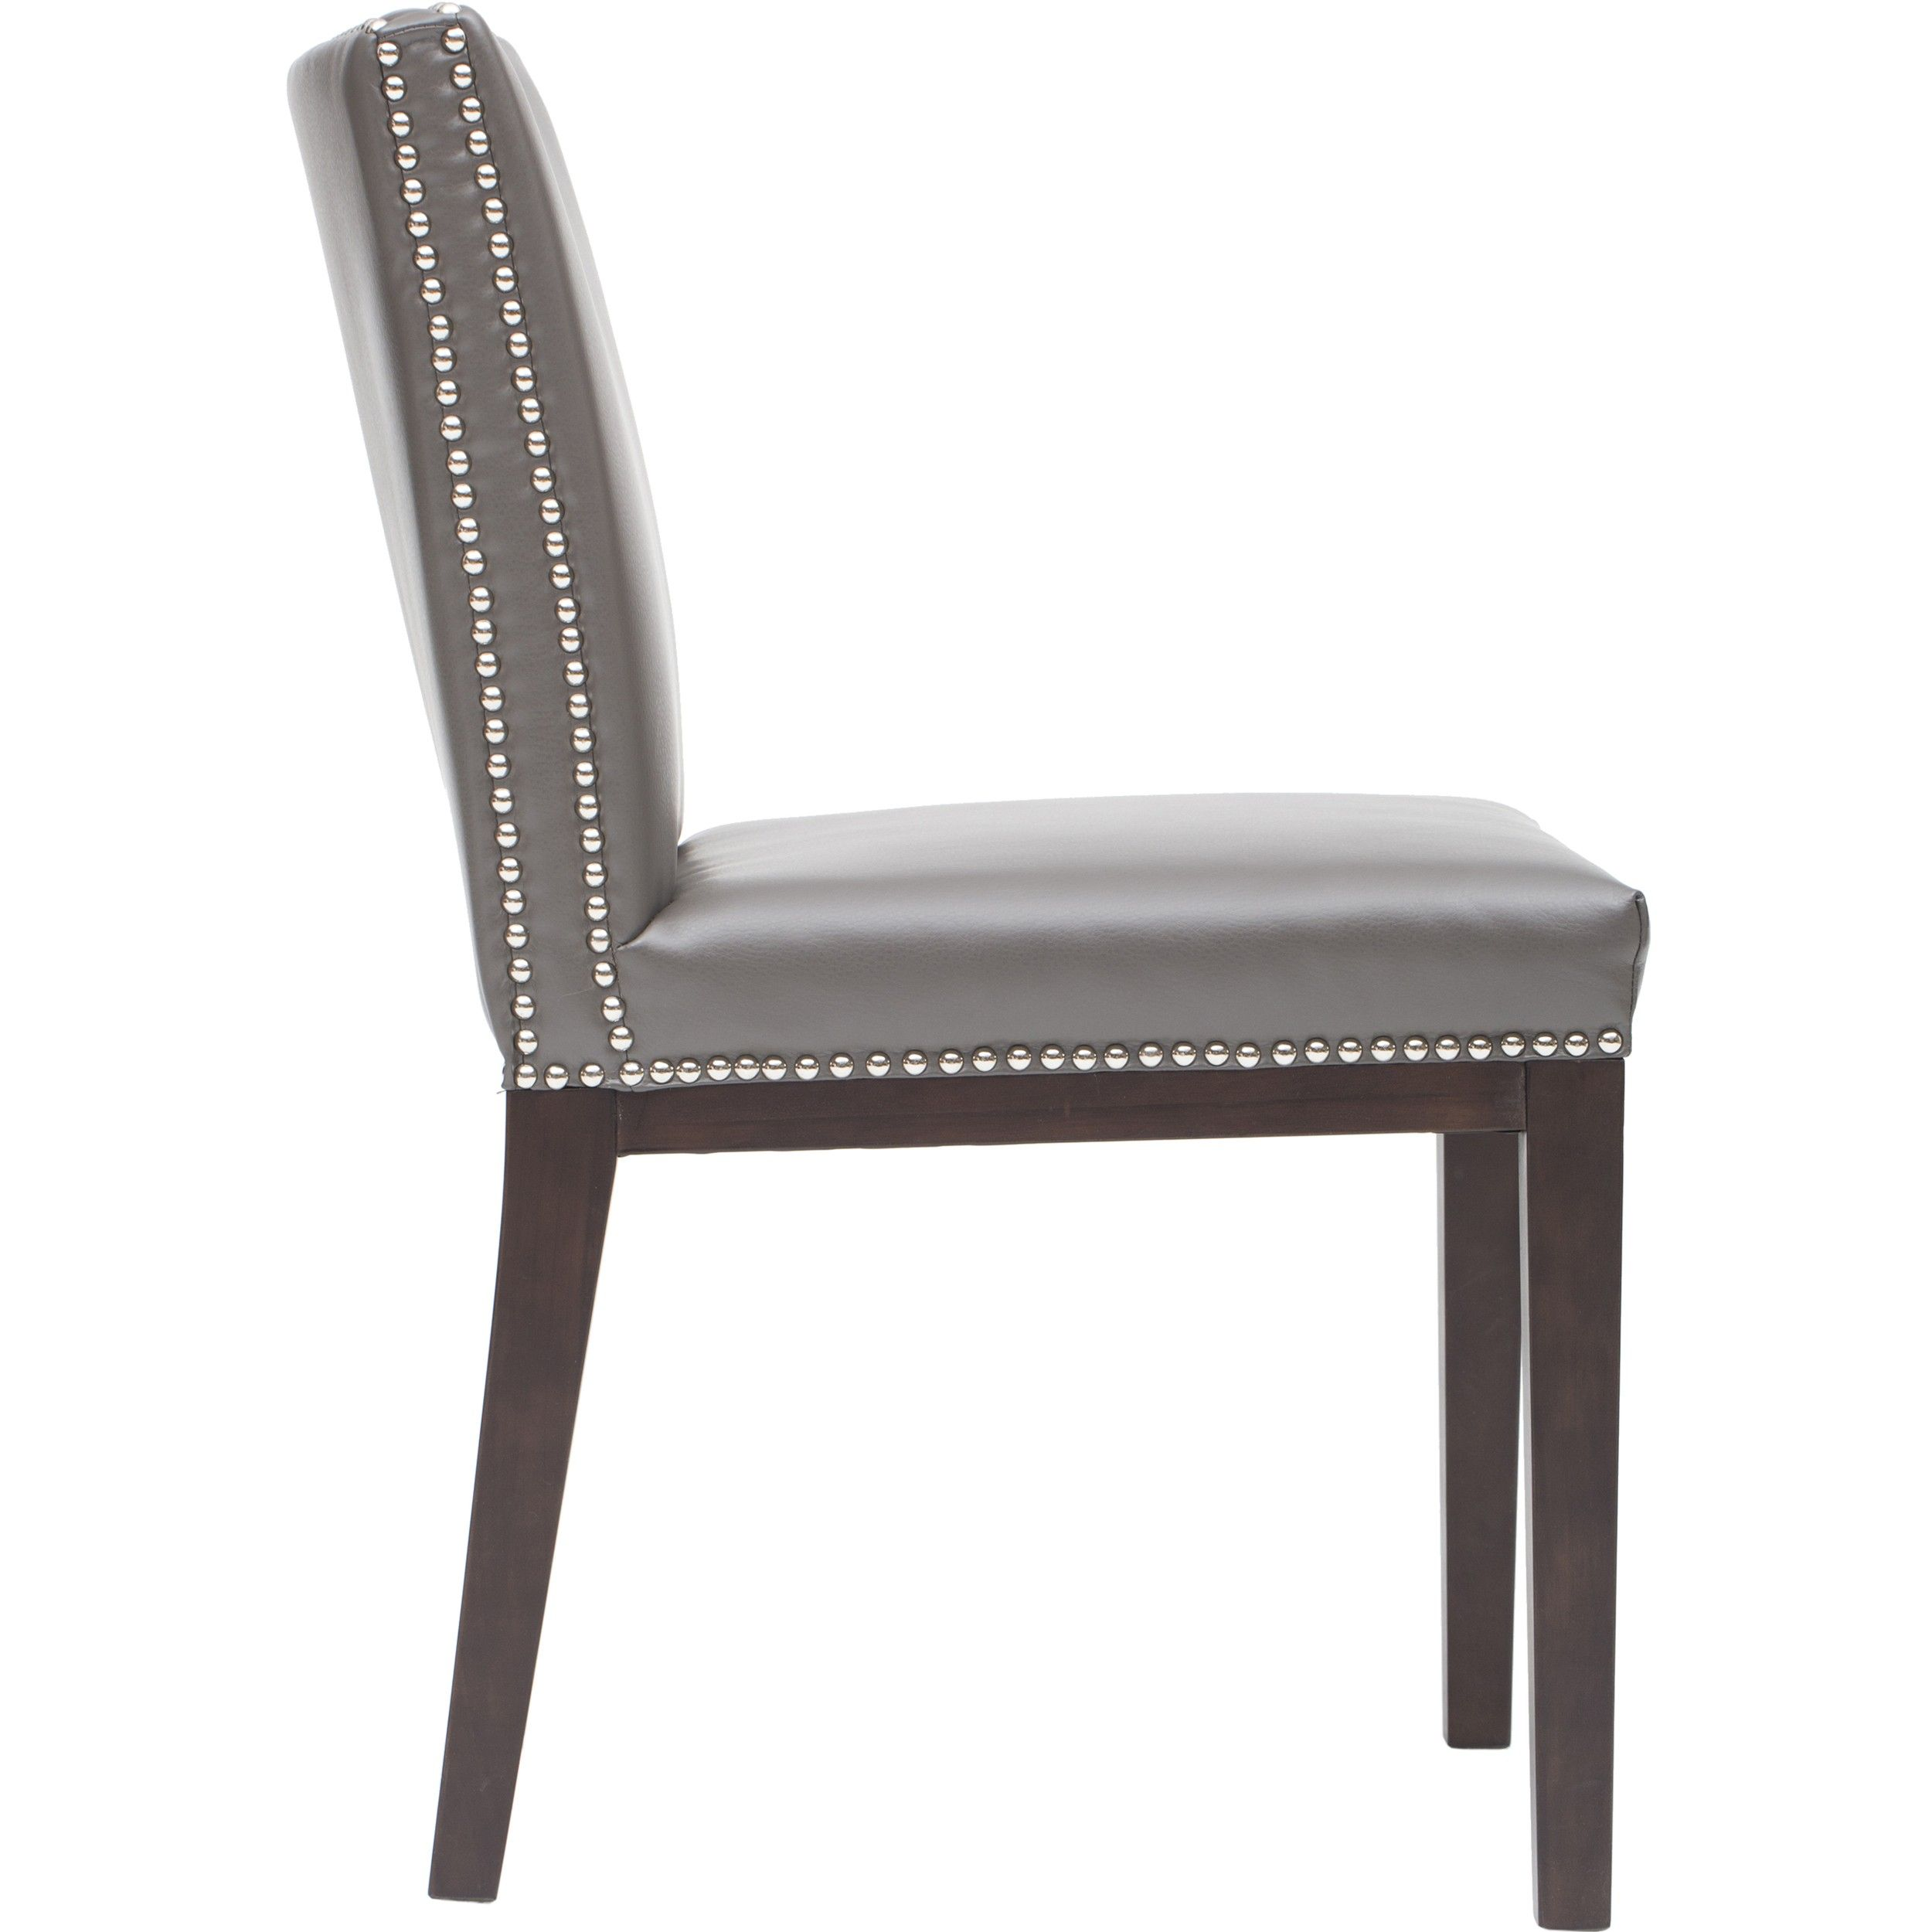 Gray And White Leather Dining Chair Google Search No Clue Where